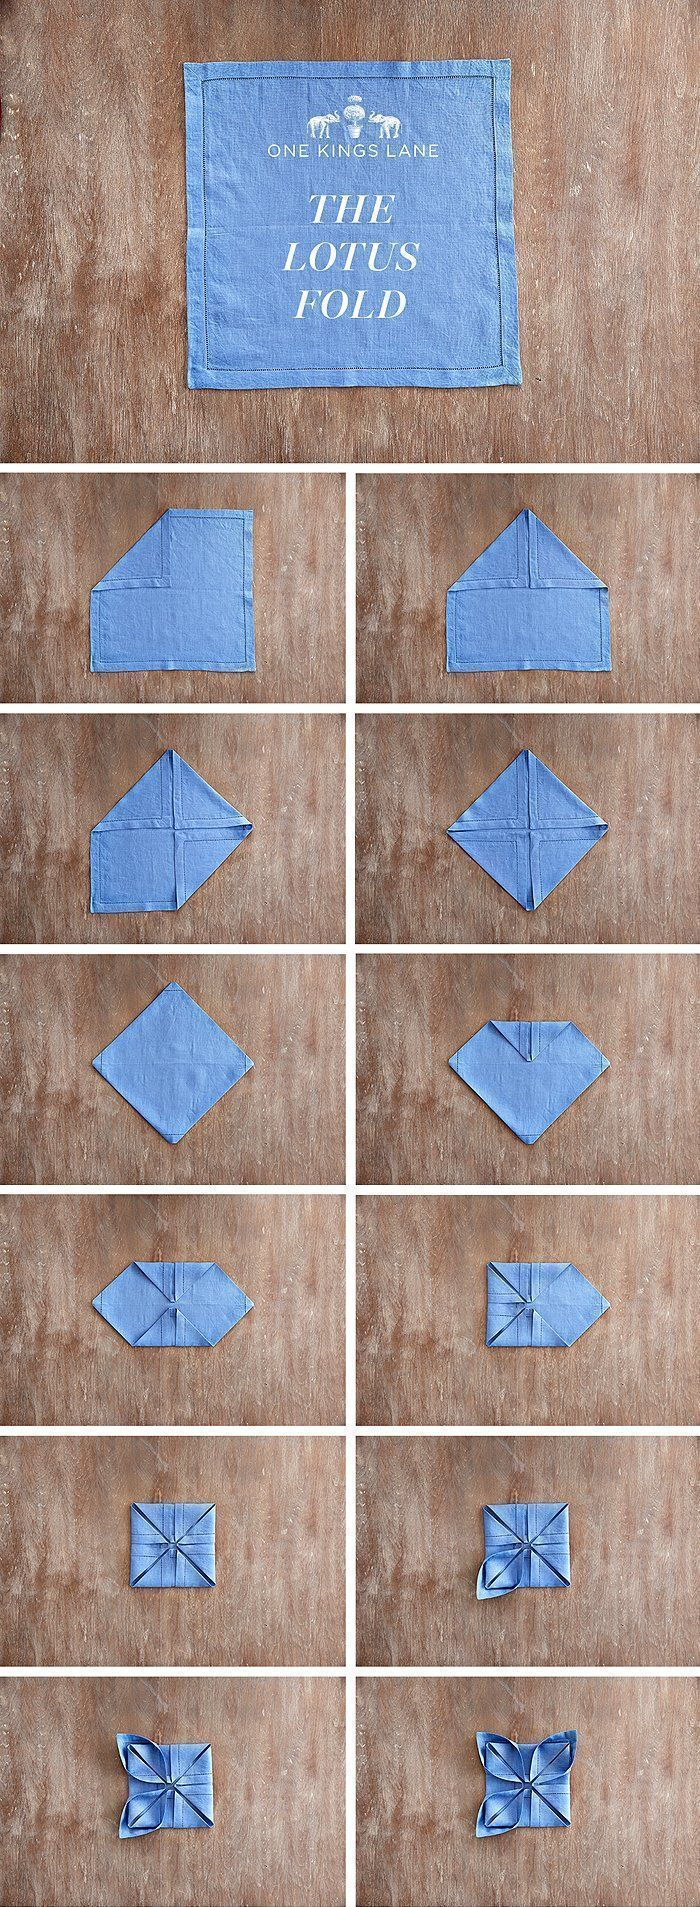 Napkins folding – Instructions for 10 festive shapes #serviettenfalten diy napkins fold instruction water lily in blue color #diynapkinfolding Napkins folding – Instructions for 10 festive shapes #serviettenfalten diy napkins fold instruction water lily in blue color #diynapkinfolding Napkins folding – Instructions for 10 festive shapes #serviettenfalten diy napkins fold instruction water lily in blue color #diynapkinfolding Napkins folding – Instructions for 10 festive shapes #serviette #diynapkinfolding